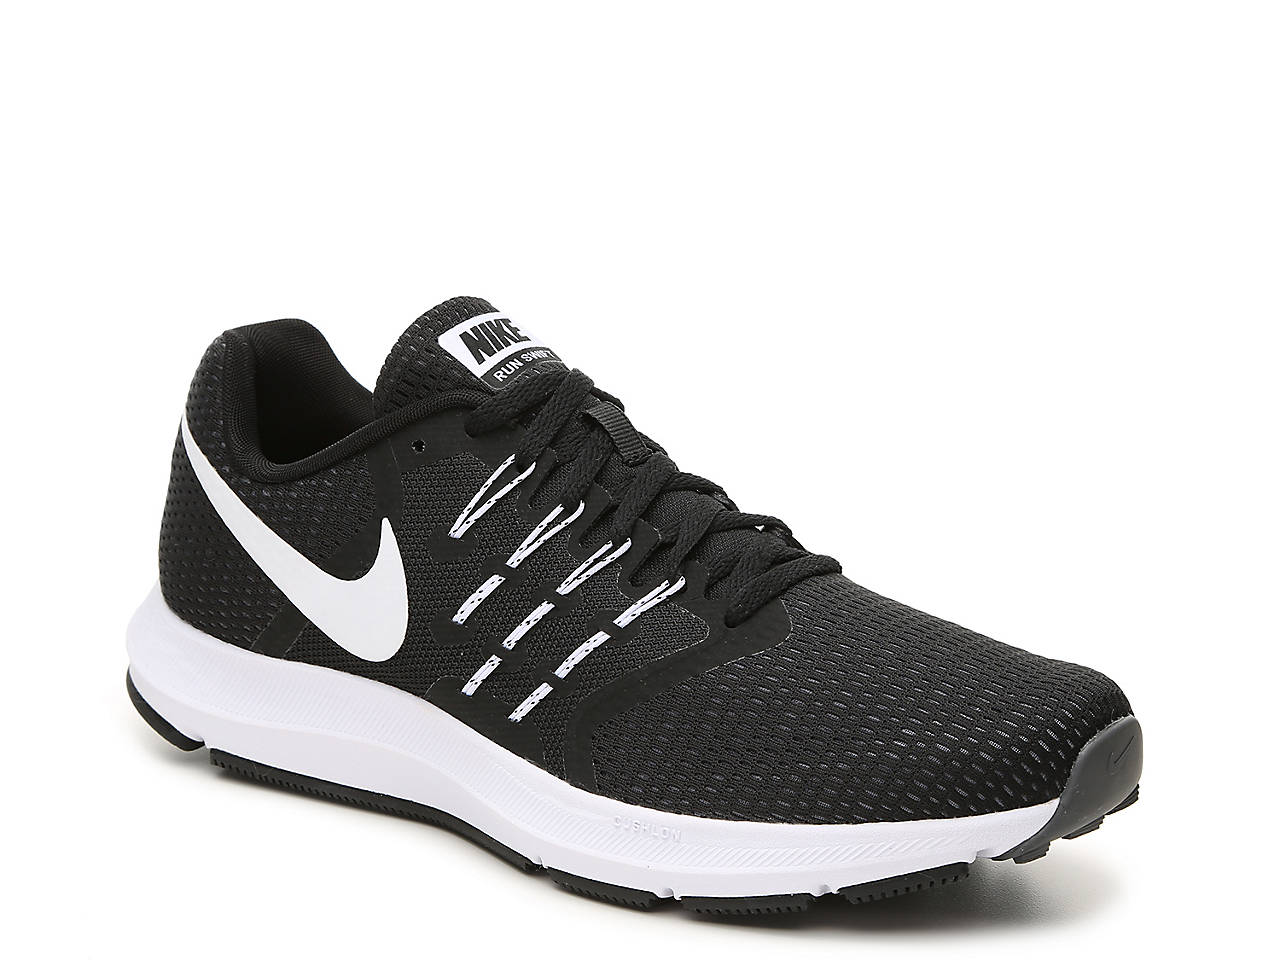 cfee8f0e881 Nike Run Swift Lightweight Running Shoe - Men s Men s Shoes